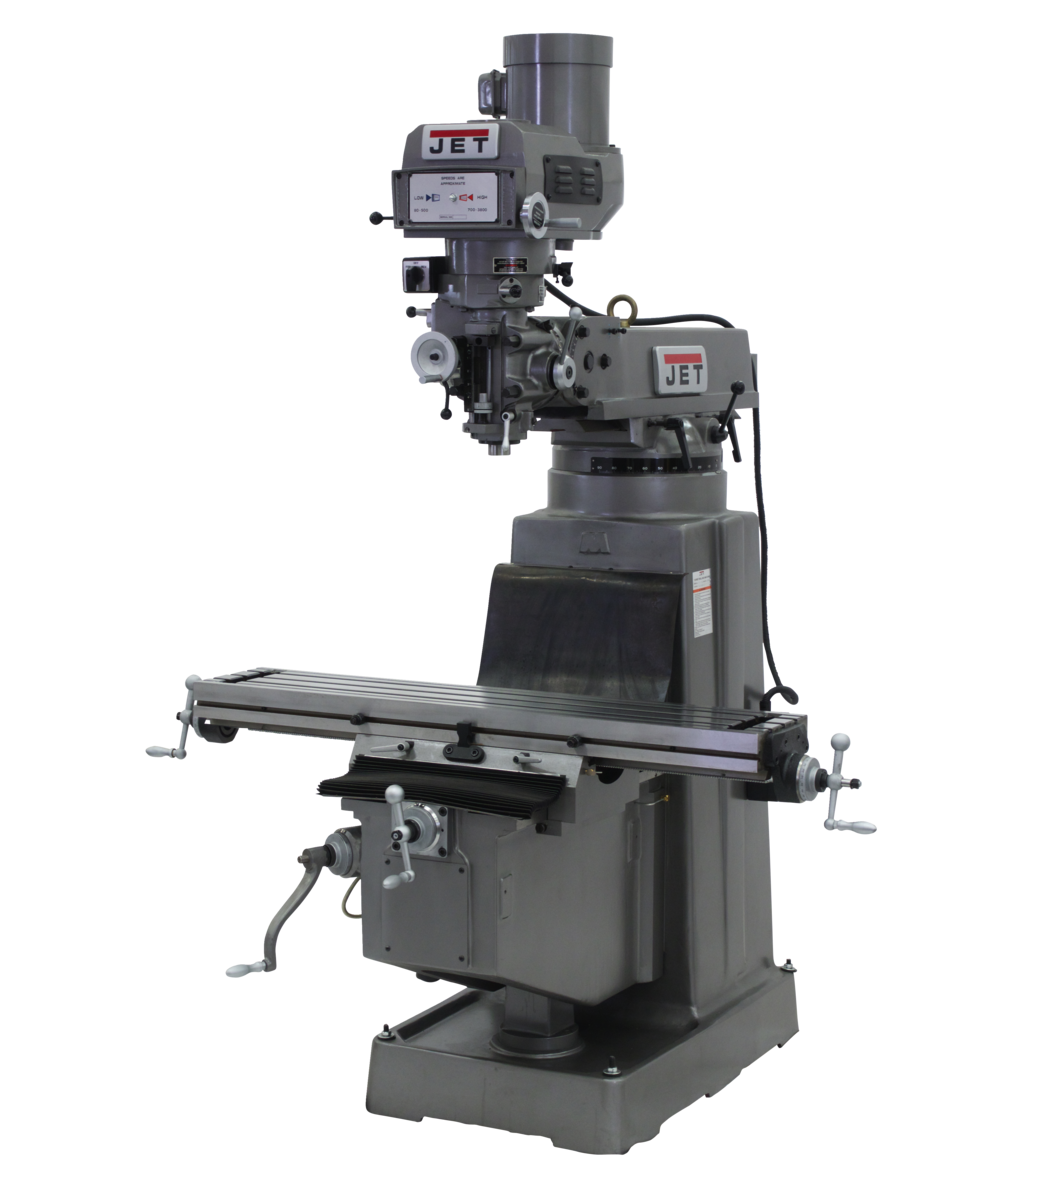 JTM-1050VS2 Mill With ACU-RITE 203 DRO With X-Axis Powerfeed and Air Powered Draw Bar